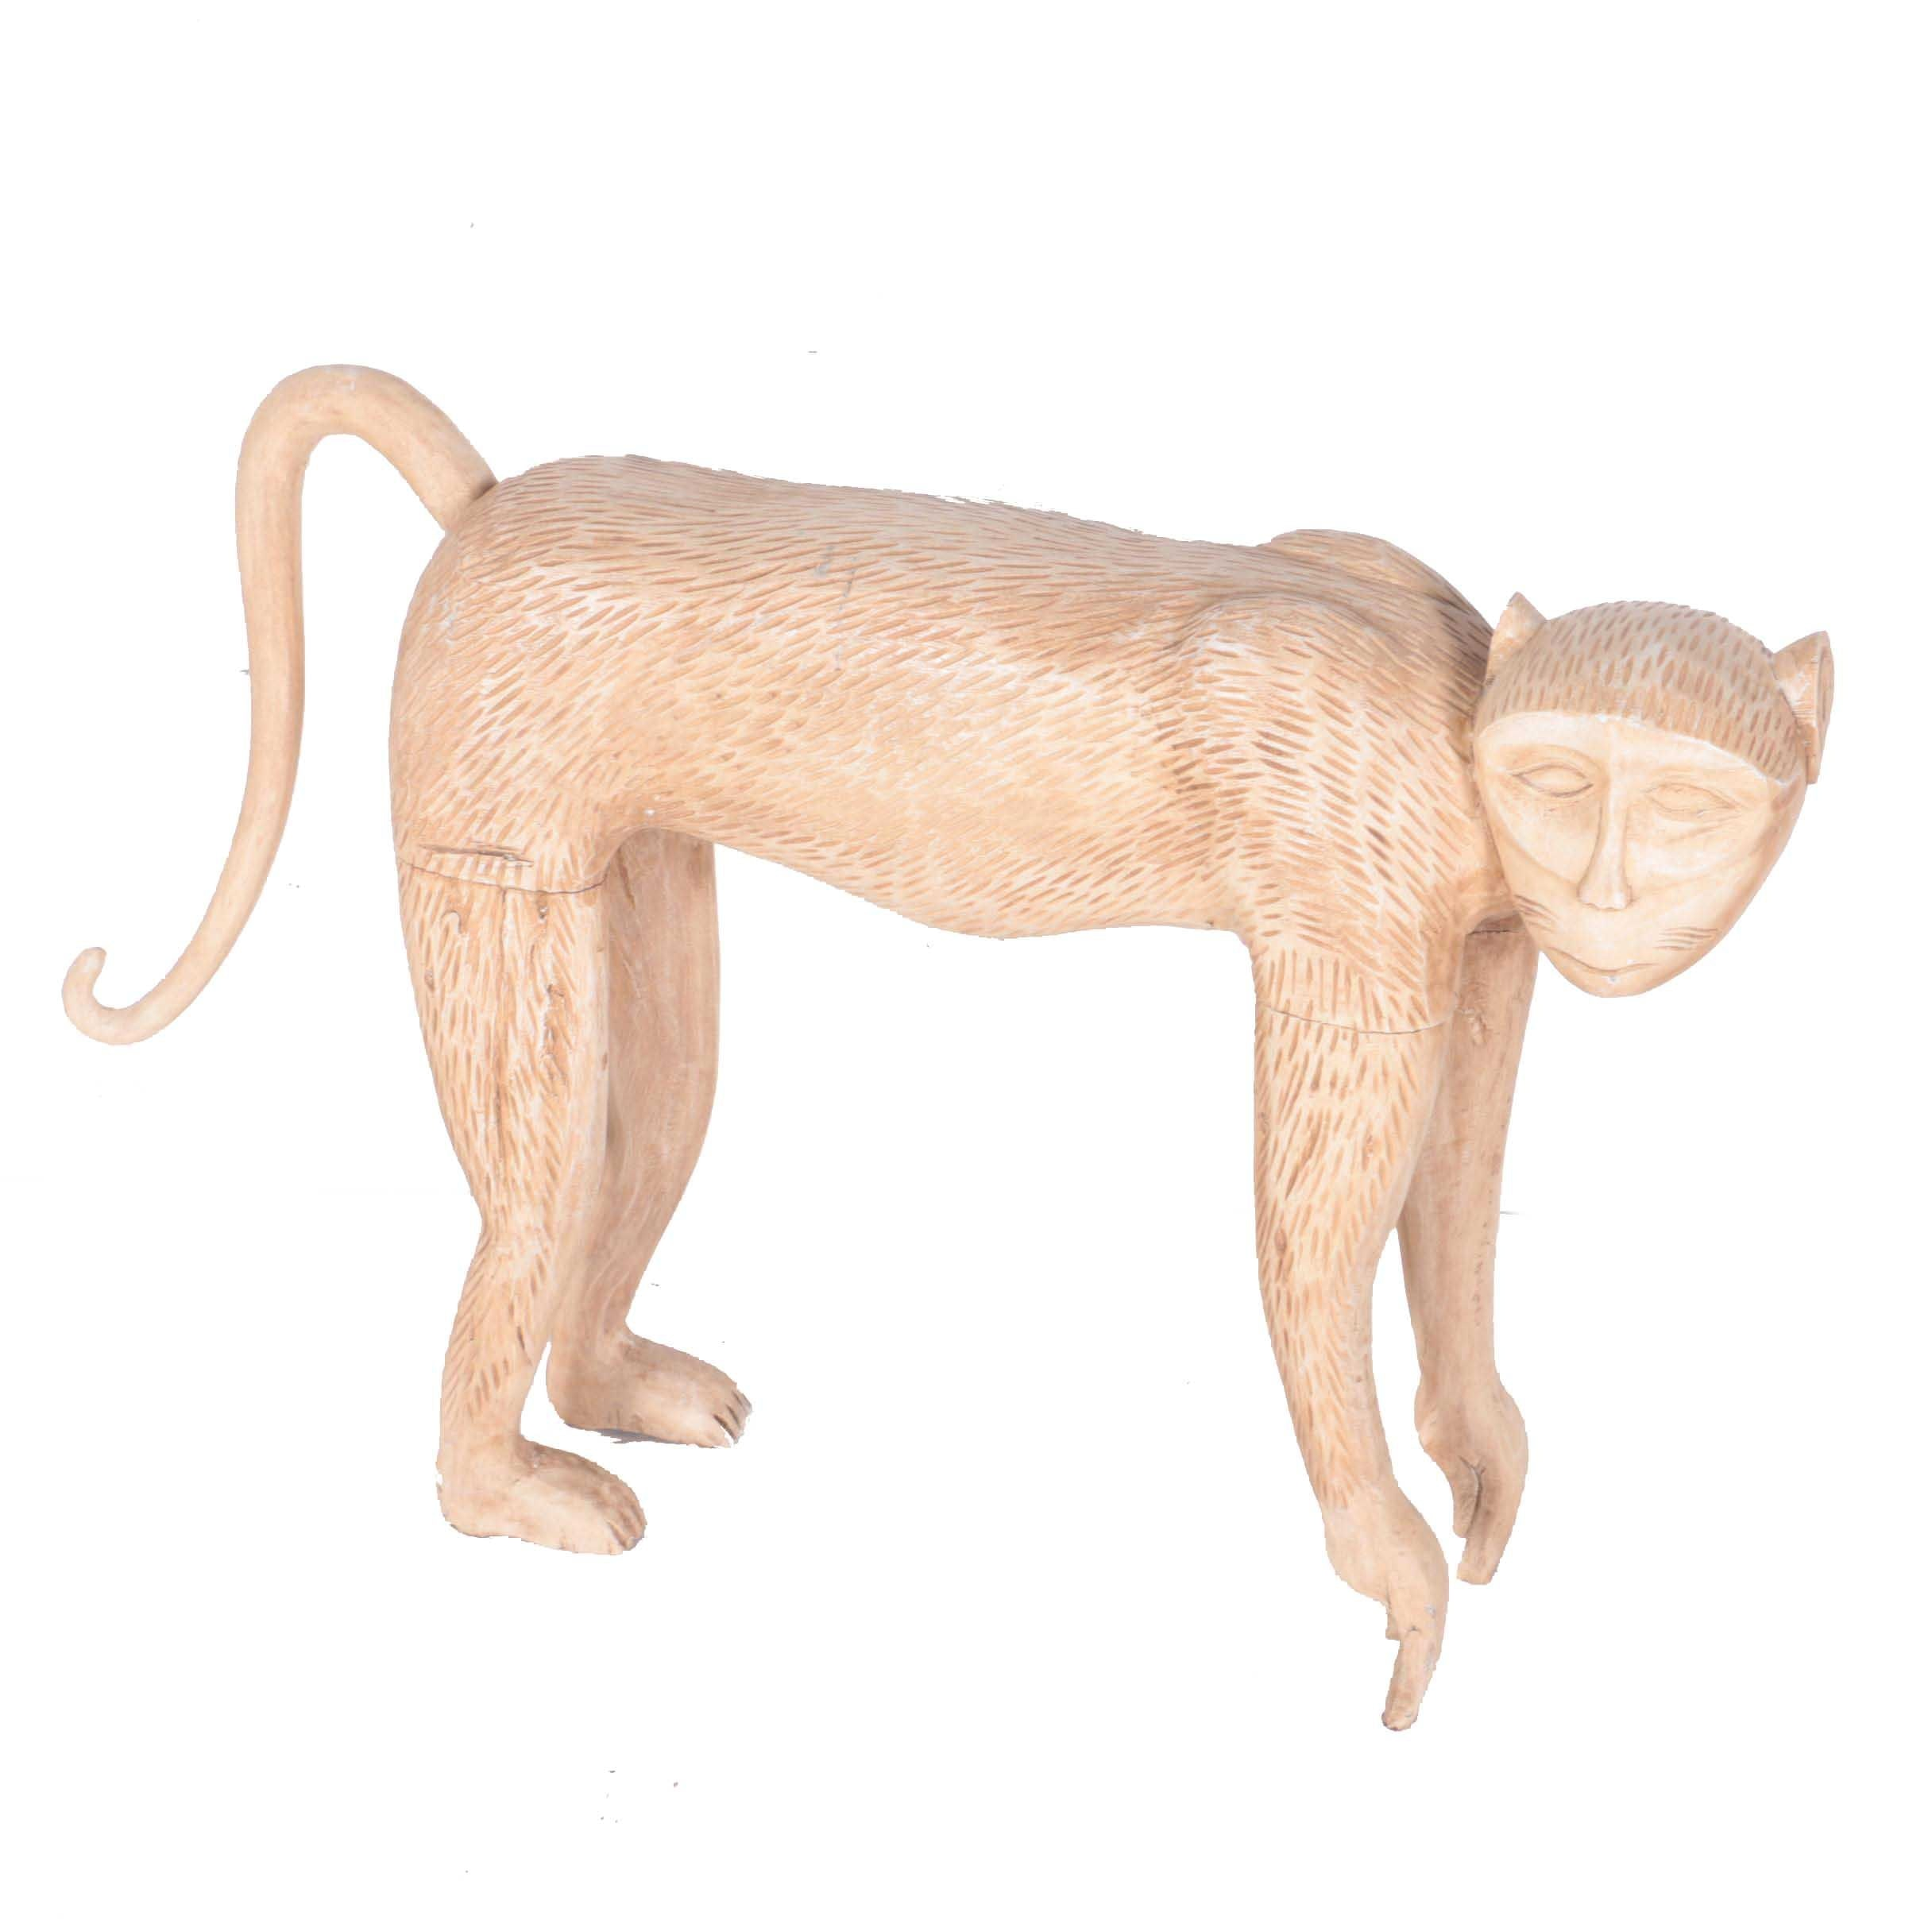 Carved Wood Statue of a Monkey